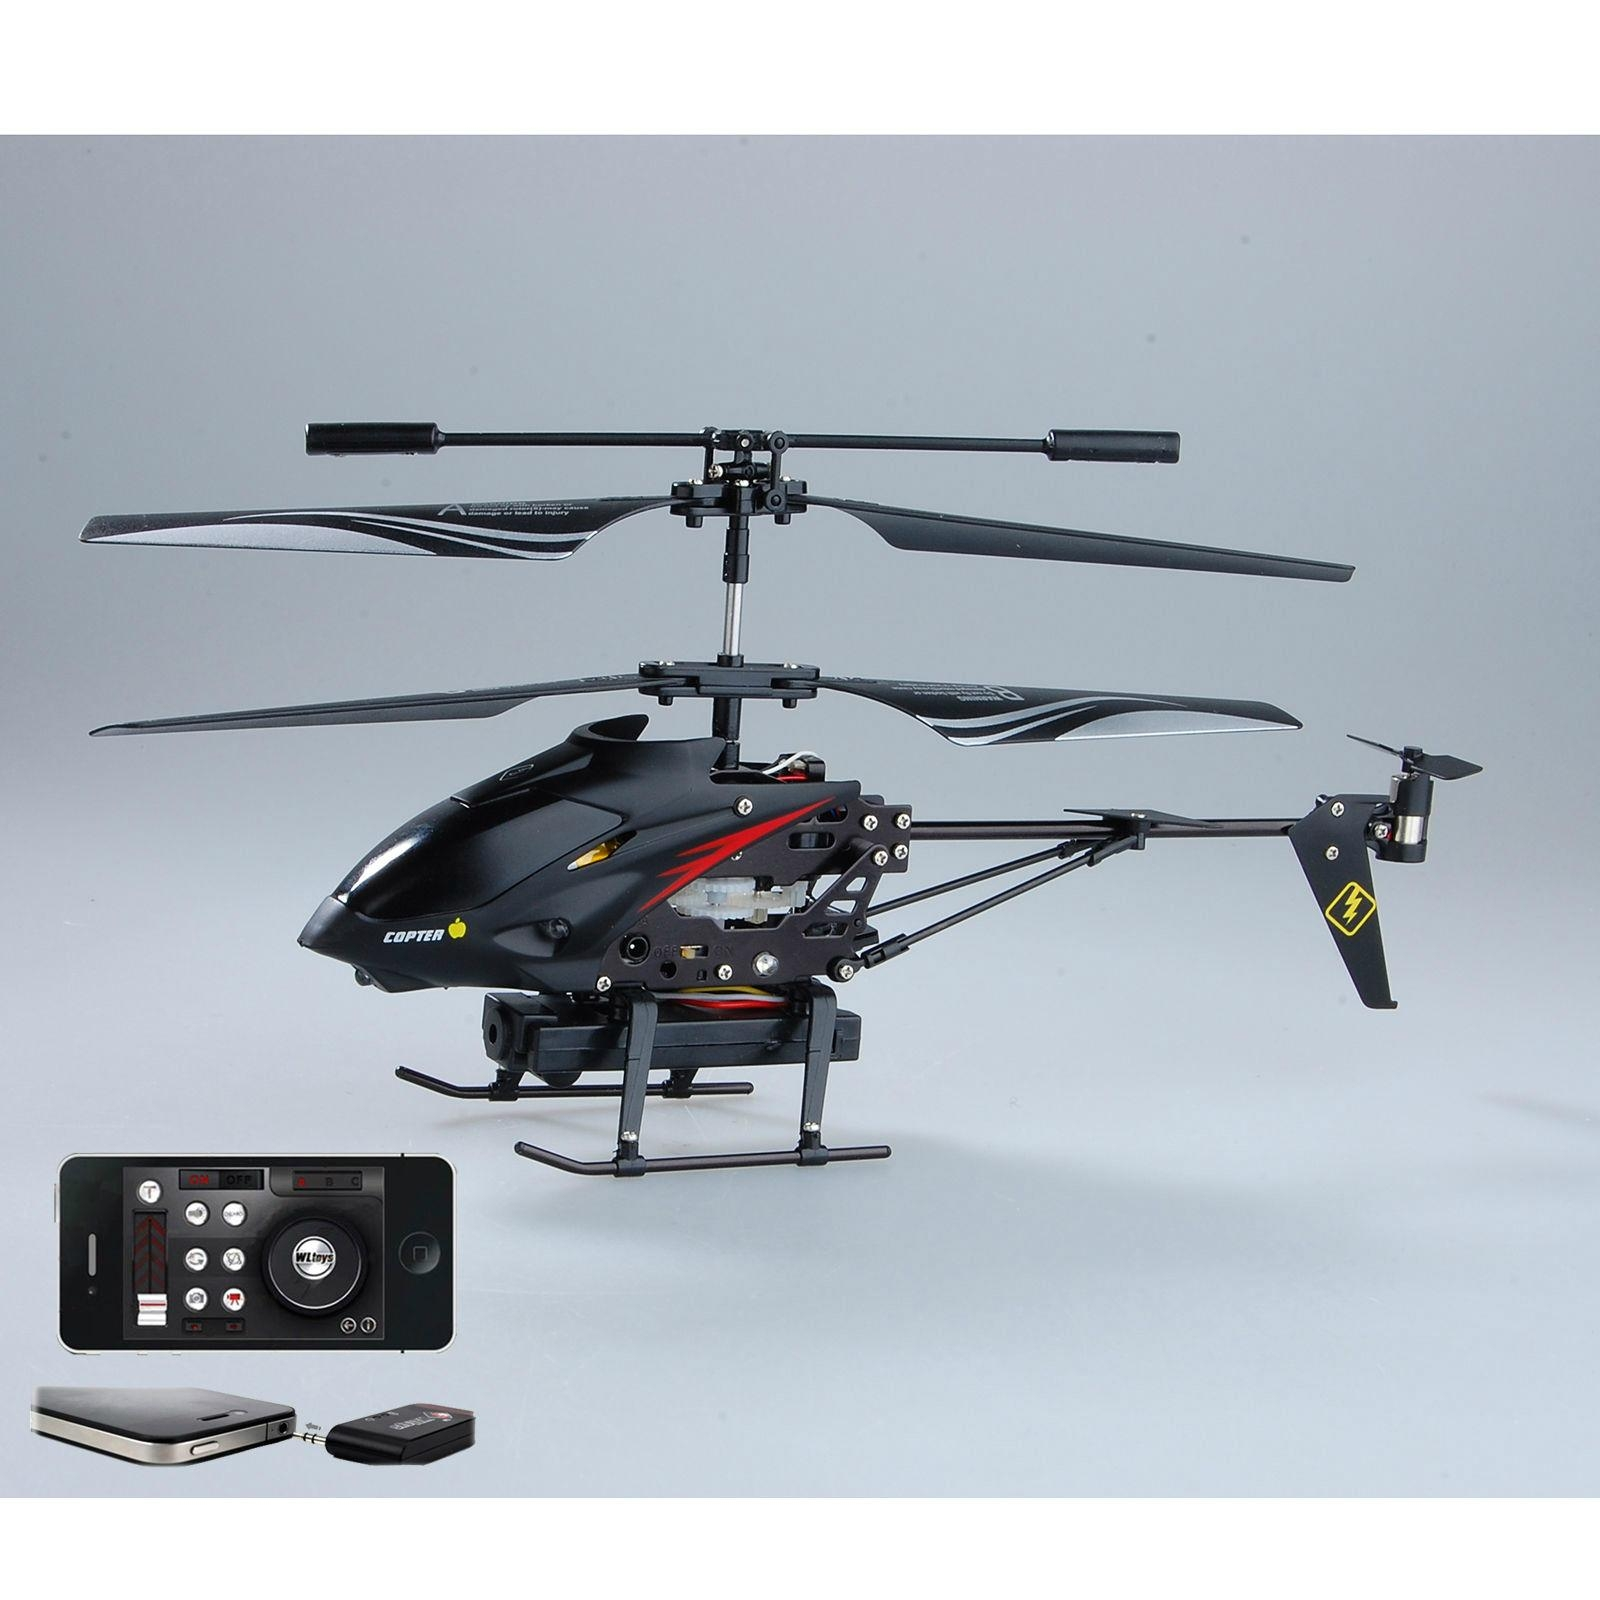 toy helicopter with remote control with Wltoys S215 Rc Toy Airplane Helicopter Video Fpv W Camera Iphone Android Control on Watch in addition Passenger Airplane Bottom 2456 together with Watch in addition Syma S107g Mini Gyro Yellow P 118318 likewise Wltoys S215 RC Toy Airplane Helicopter Video FPV w Camera iphone Android Control.